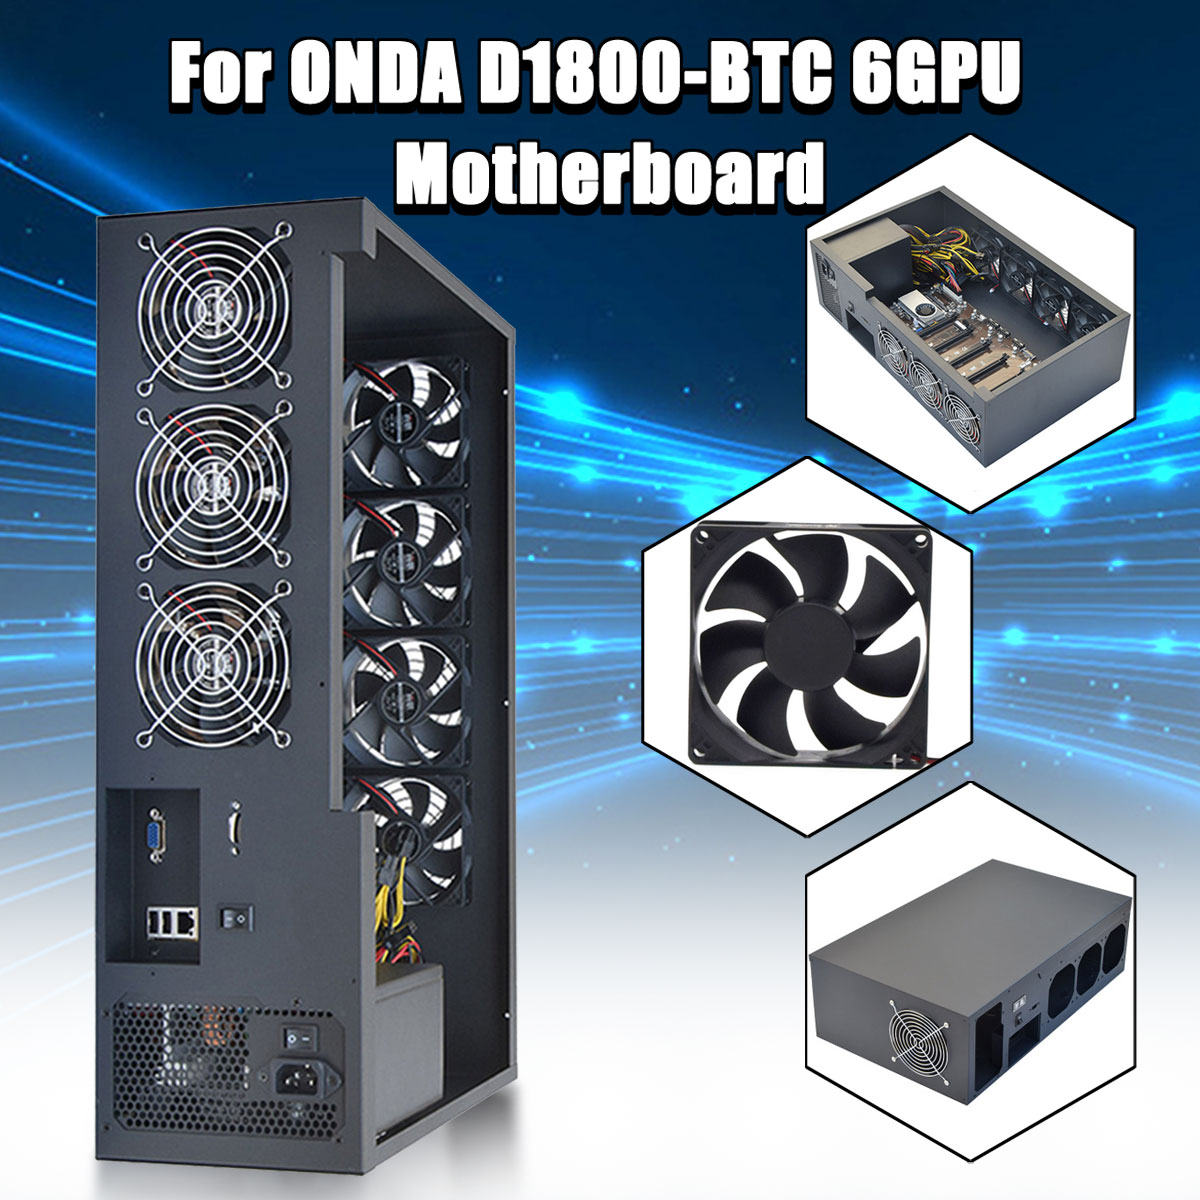 6GPU Crypto Coin Open Air Mining Server Frame Rig Graphics Case /with 7 Fans Optional Computer Mining Case Frame Server Chassis6GPU Crypto Coin Open Air Mining Server Frame Rig Graphics Case /with 7 Fans Optional Computer Mining Case Frame Server Chassis